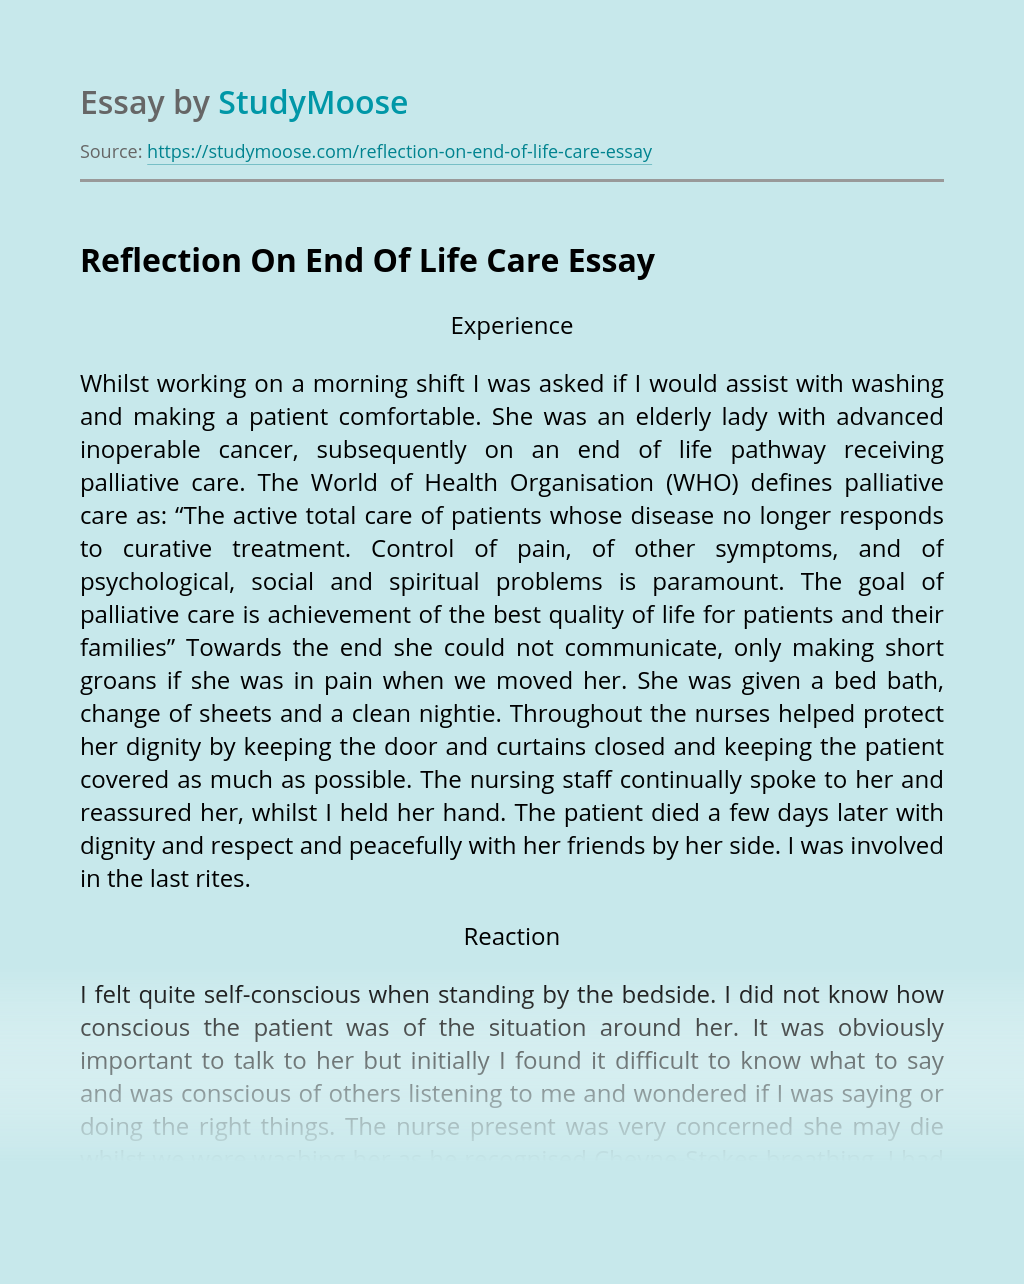 Reflection On End Of Life Care